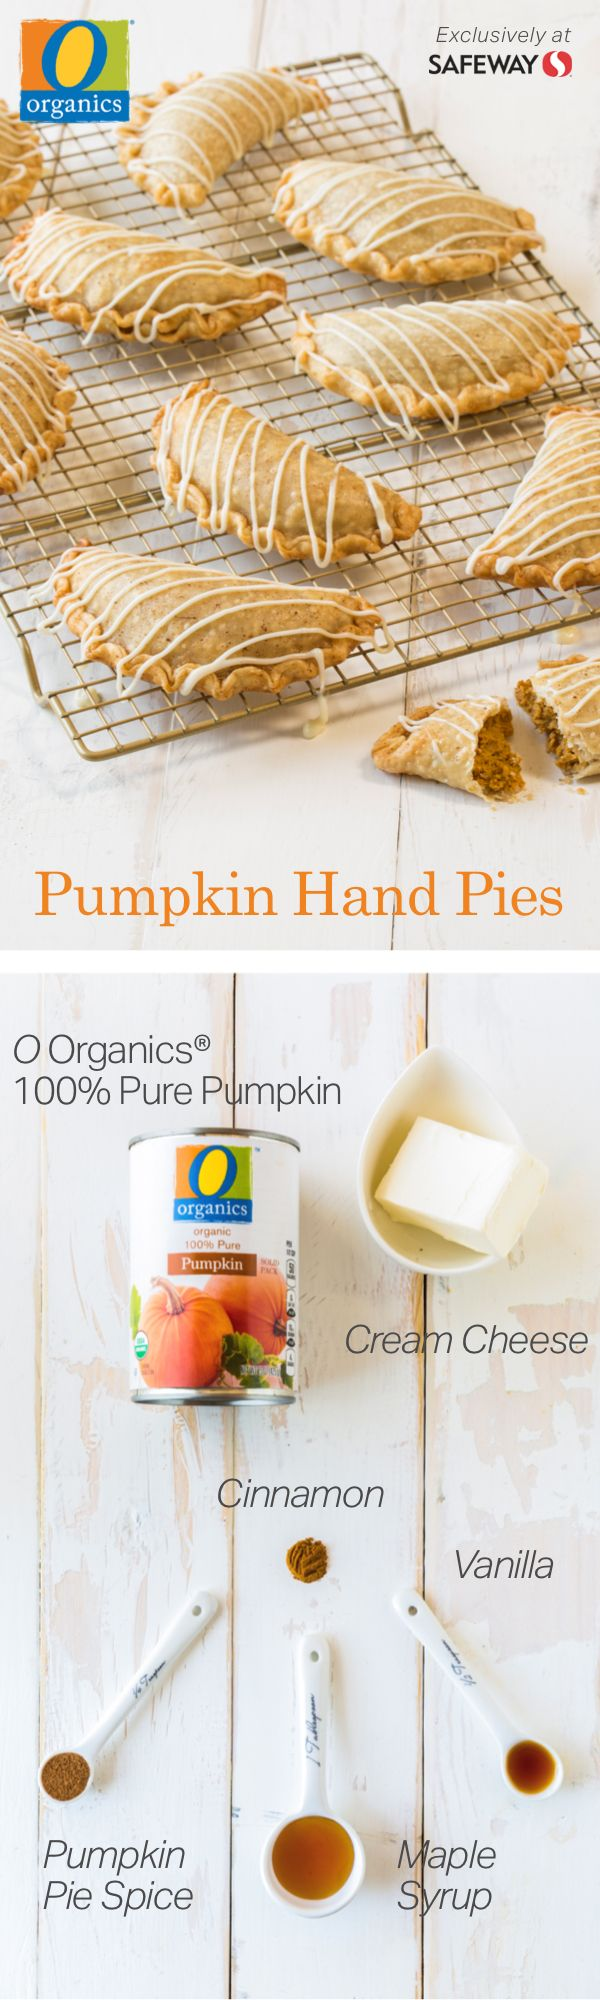 Put a new twist on the classic pumpkin pie with this grab-and-go dessert! Made with O Organics® 100% Pure Pumpkin, found exclusively at your local Safeway, this adorable and portable sweet treat will make the holidays even tastier. Bake these Pumpkin Hand Pies from scratch and impress all your holiday guests with seasonal flavors of pumpkin spice, vanilla and cinnamon!